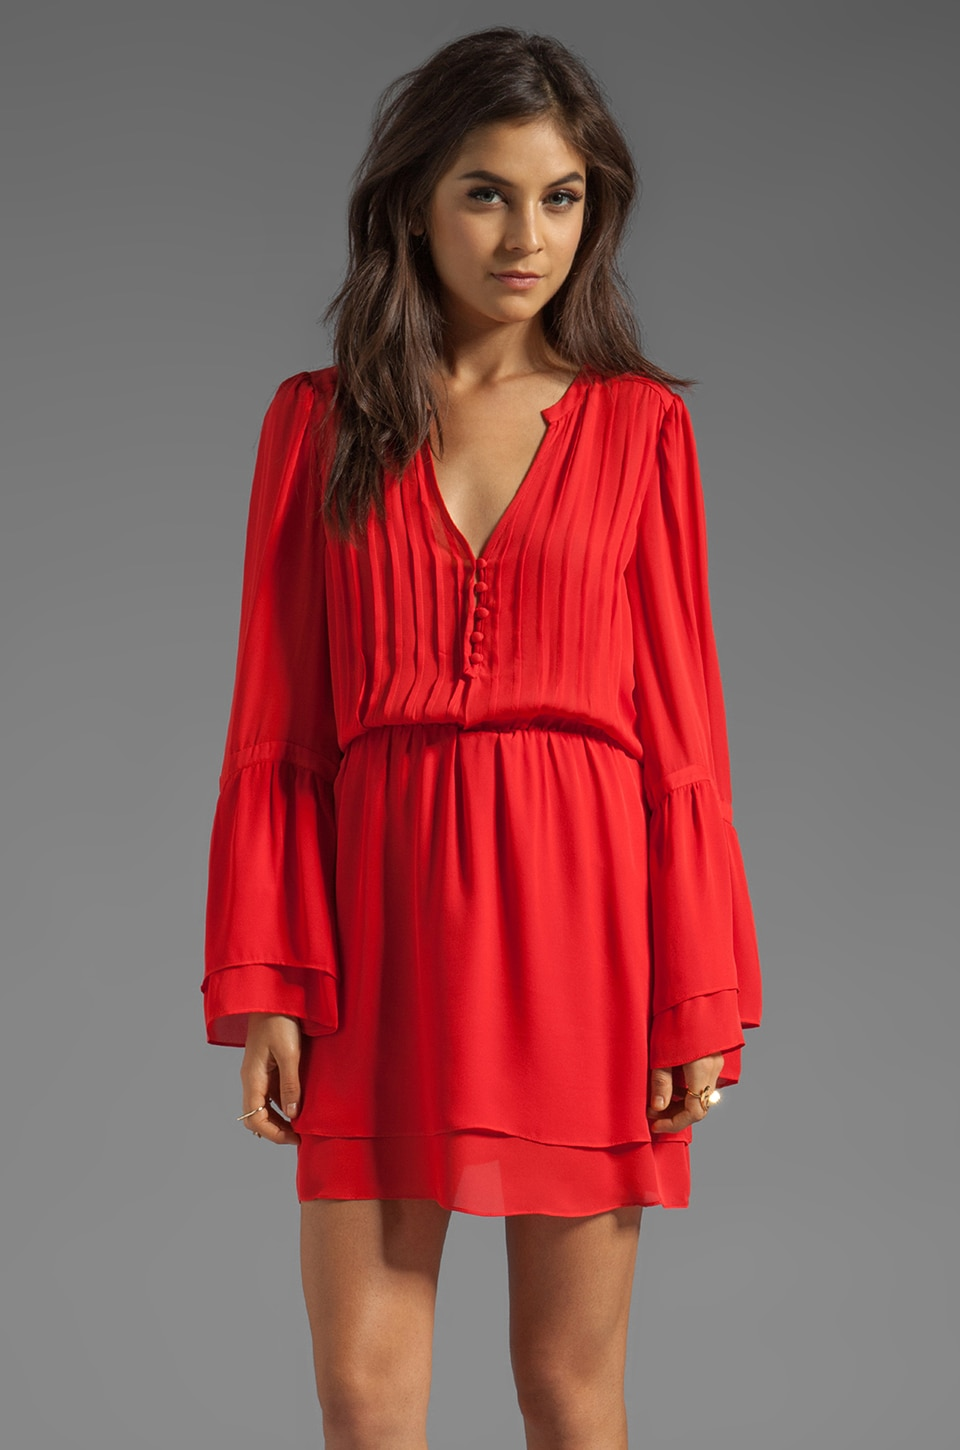 Parker Risa Dress in Tomato